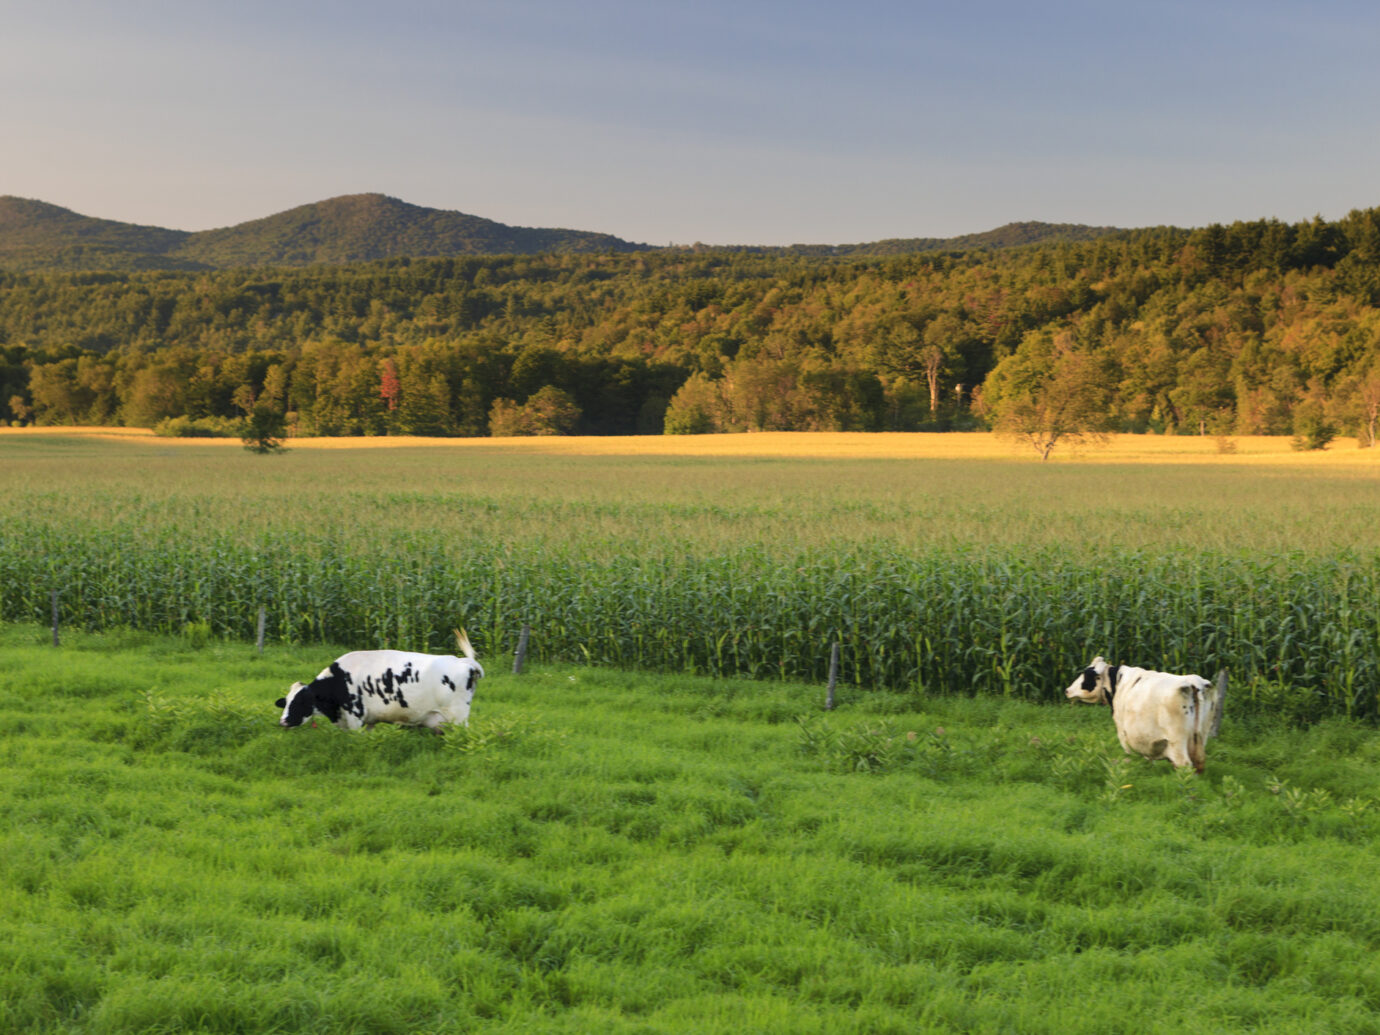 """""""Pair of cows in a green grass field with a large field of corn and mountains in the background in Stowe, Vermont, USA"""""""